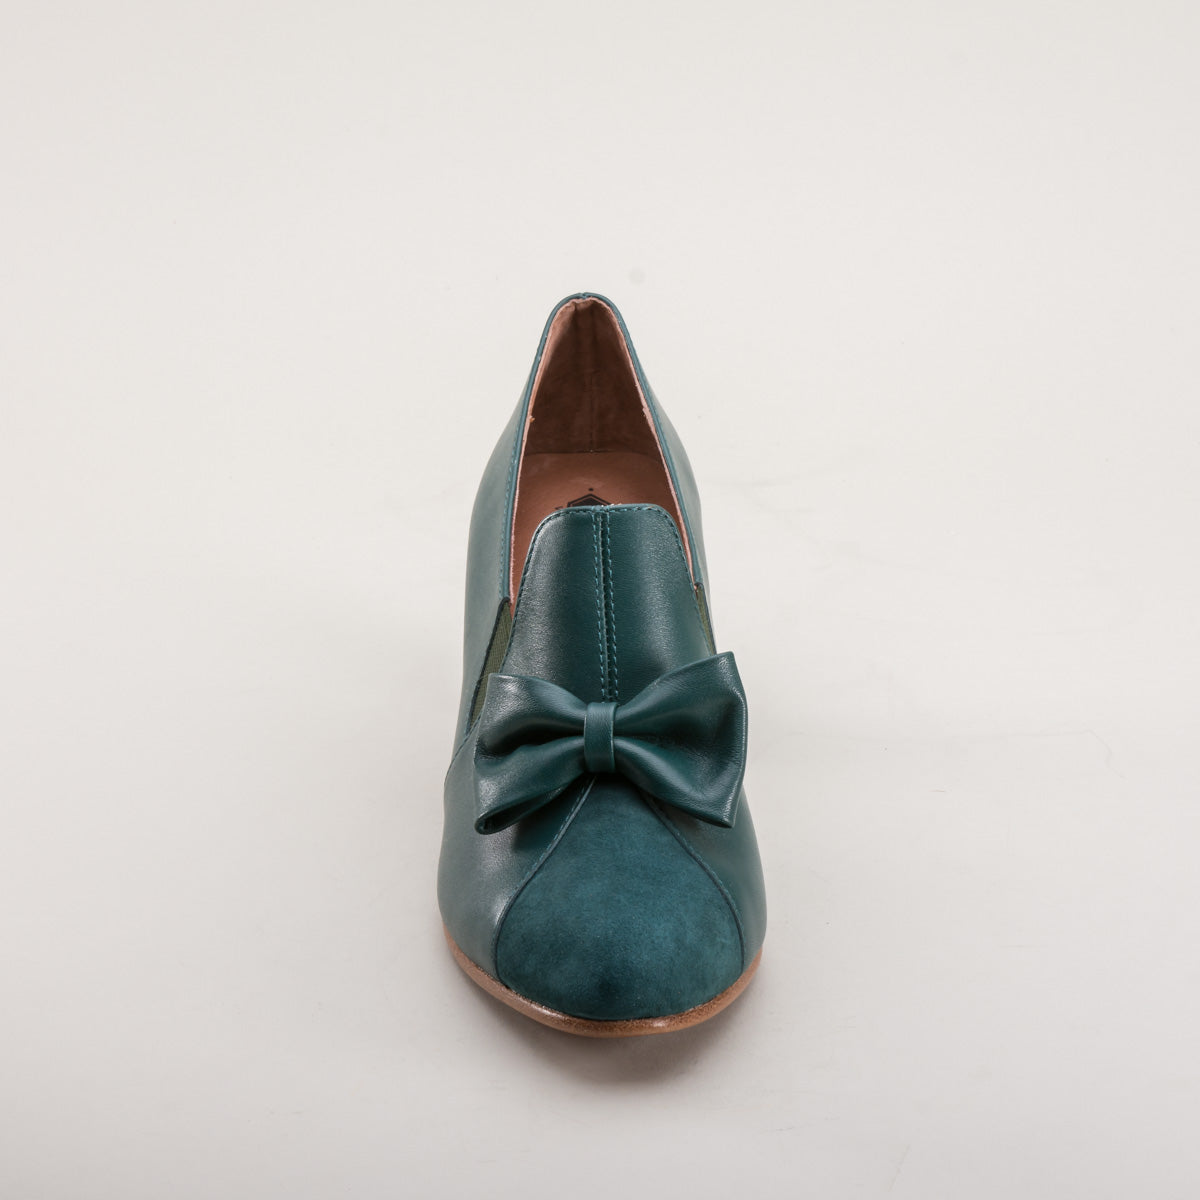 Maria Retro Bow Pumps (Green)